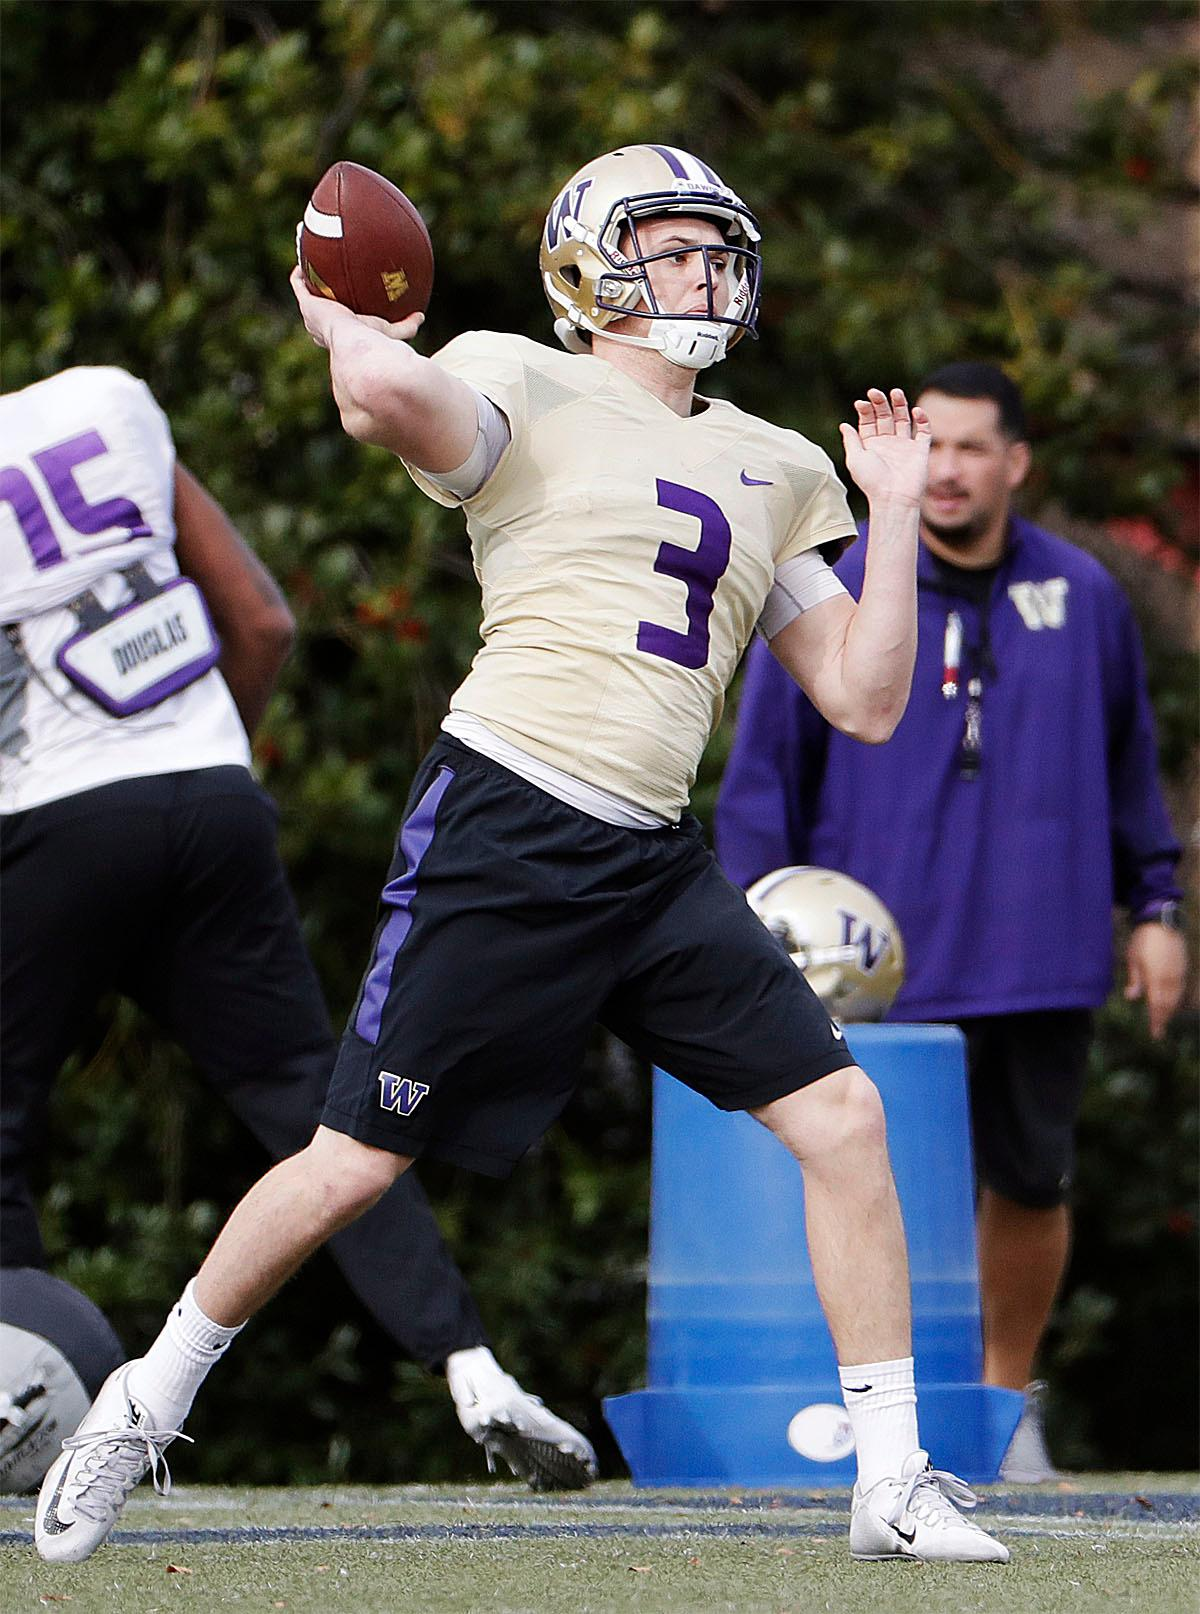 Washington quarterback Jake Browning throws a pass during a Peach Bowl NCAA college football practice in Atlanta, Wednesday, Dec. 28, 2016. Alabama and Washington will face off in the Peach Bowl football game Saturday. (AP Photo/David Goldman)